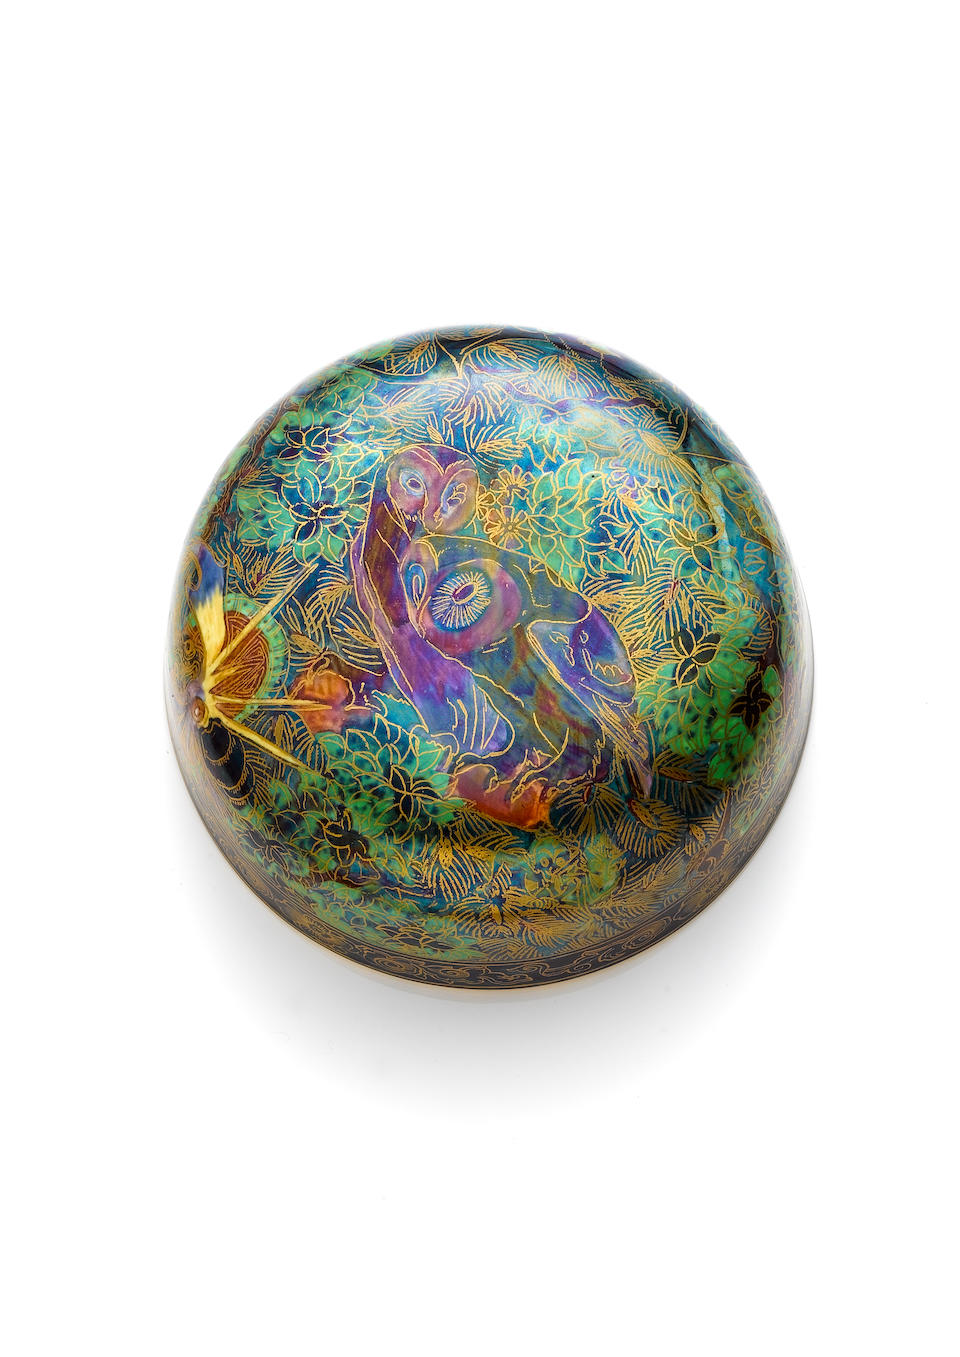 Daisy Makeig-Jones for Wedgwood 'Ghostly Wood' a Rare, Fairyland Lustre, Malfrey Pot and Cover, circ